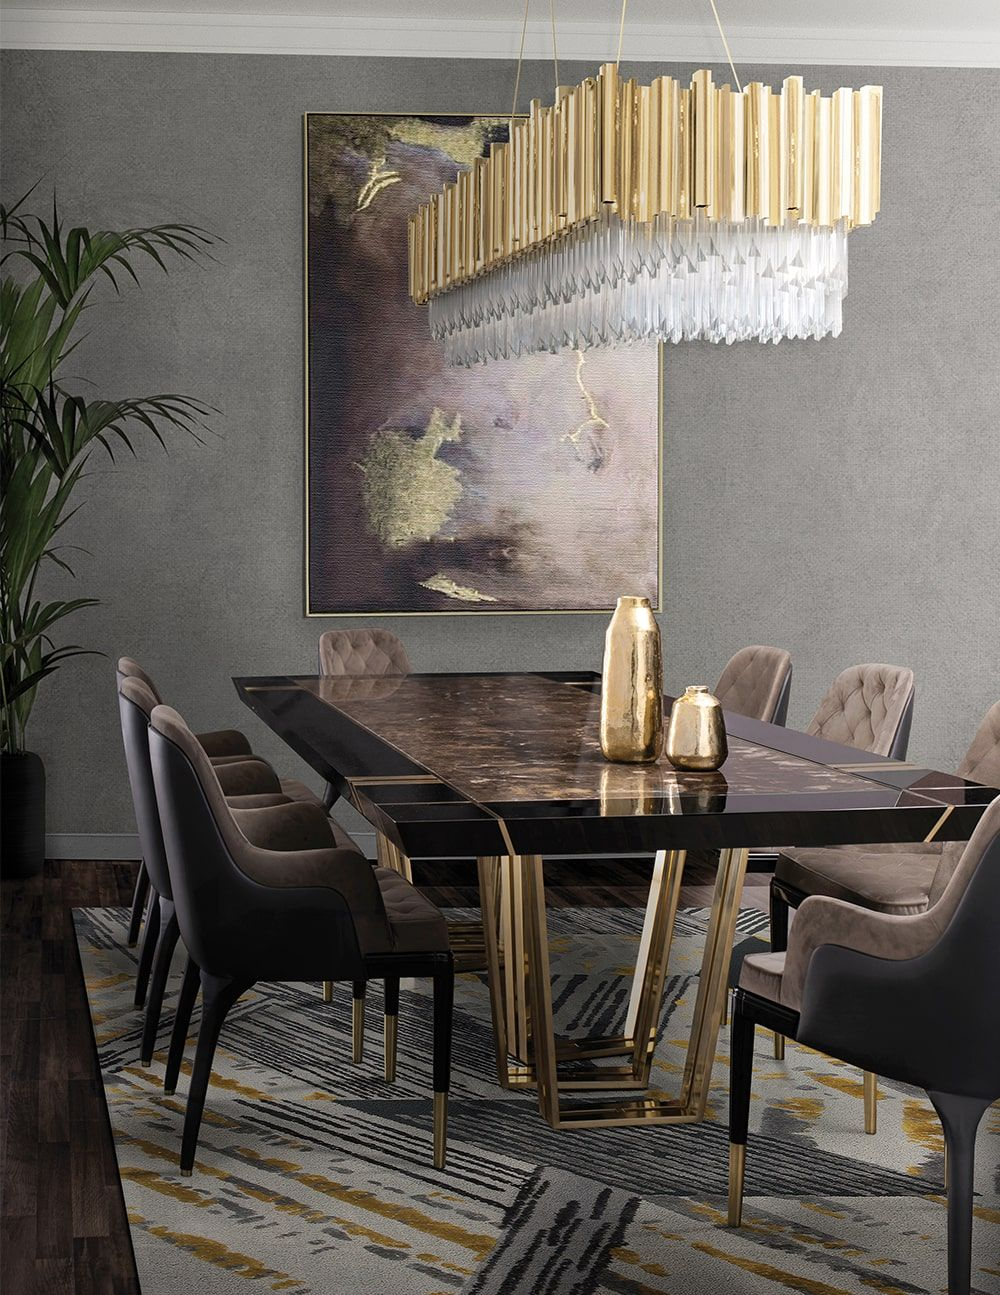 dining chairs 25 Dining Chairs That Fit In Any Design Project 944037086b4e7c13c229db58d4386a13